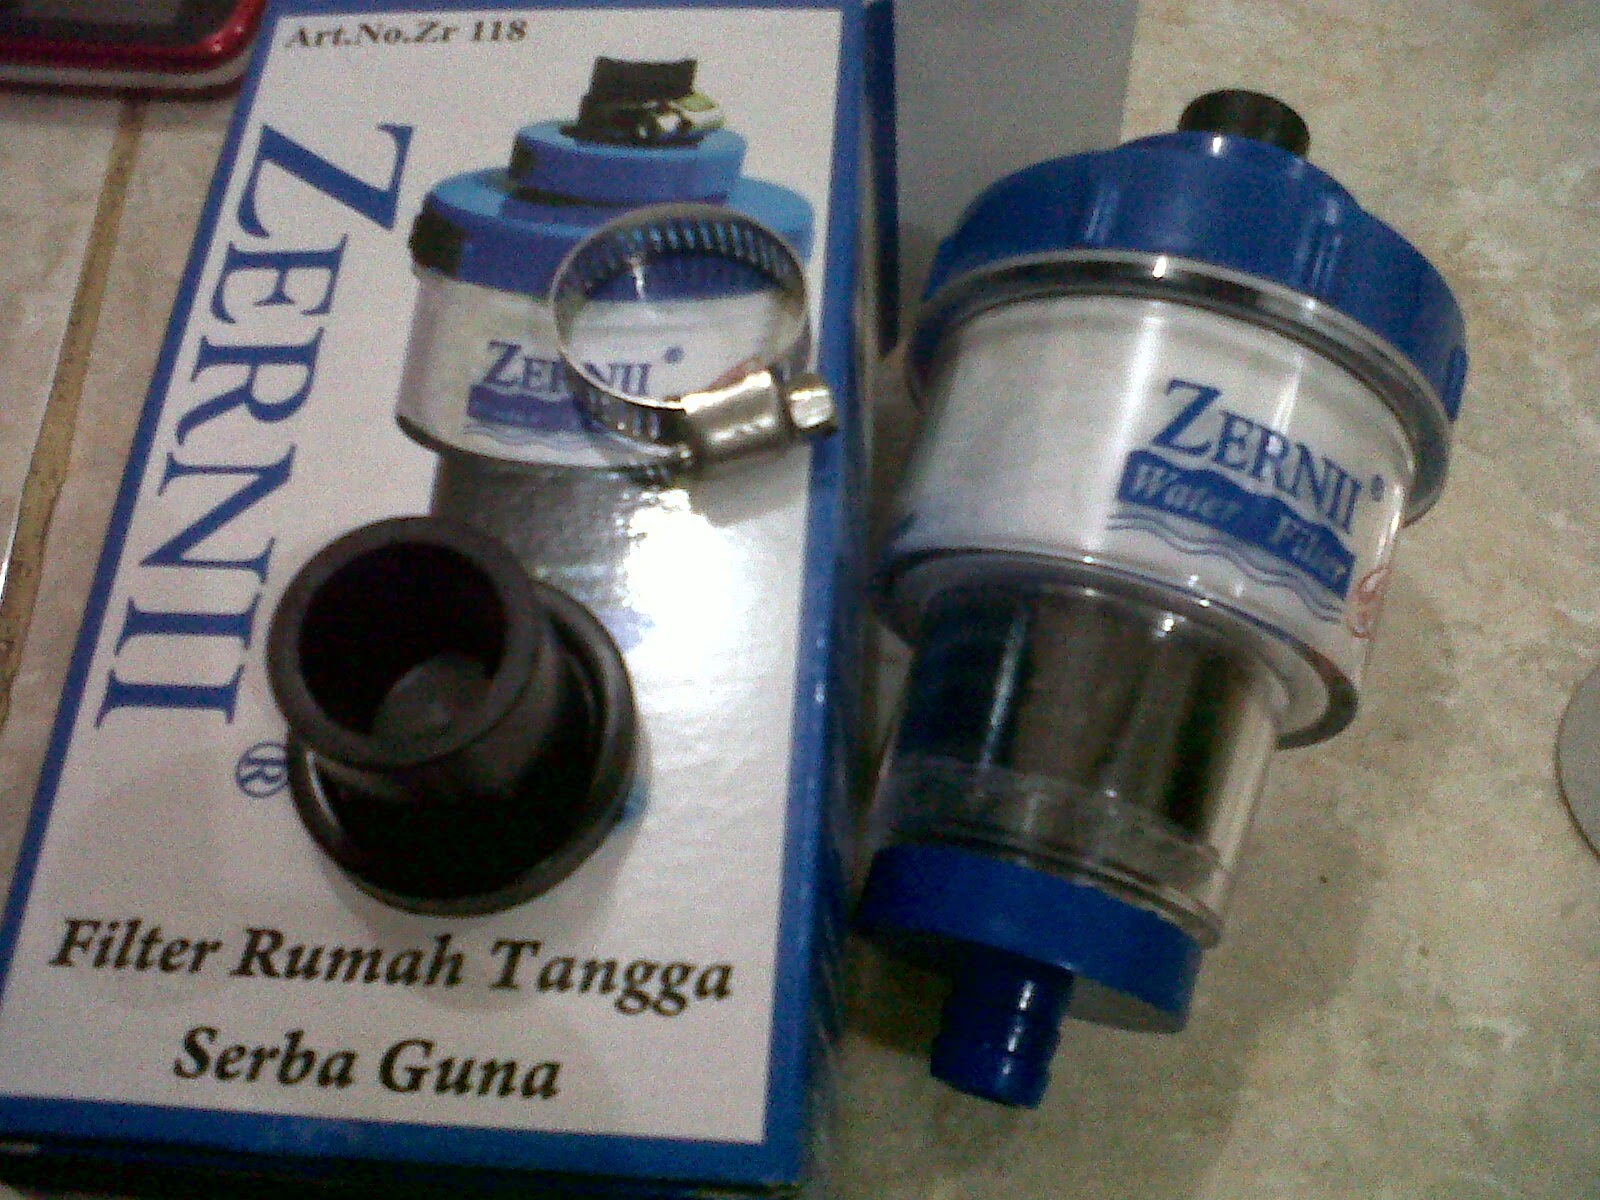 ZERNII WATER FILTER